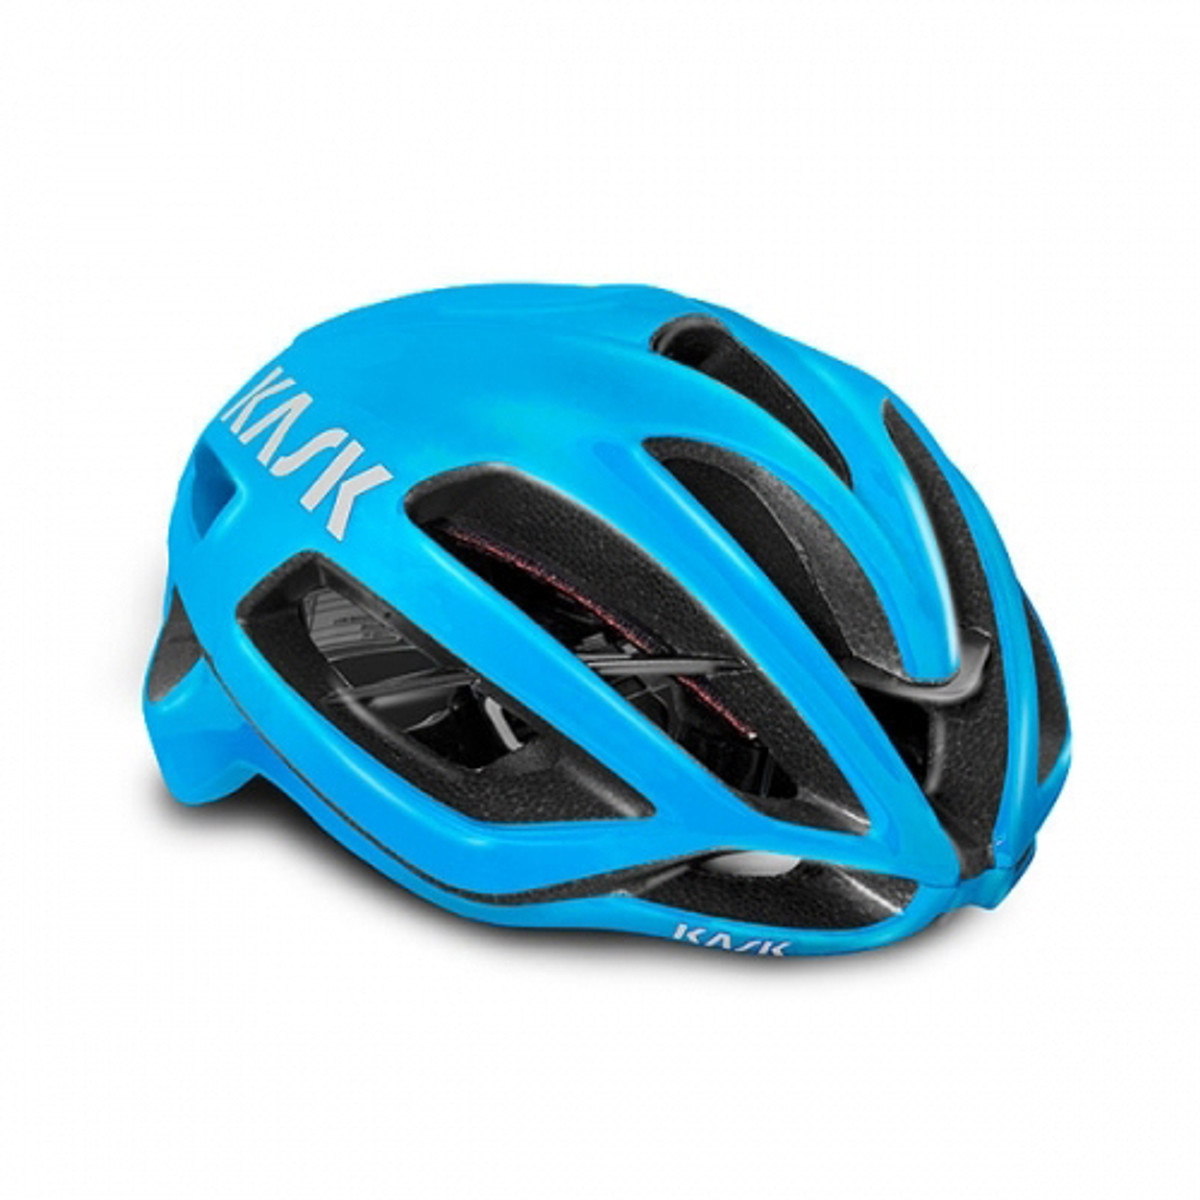 Kask Protone - Light Blue